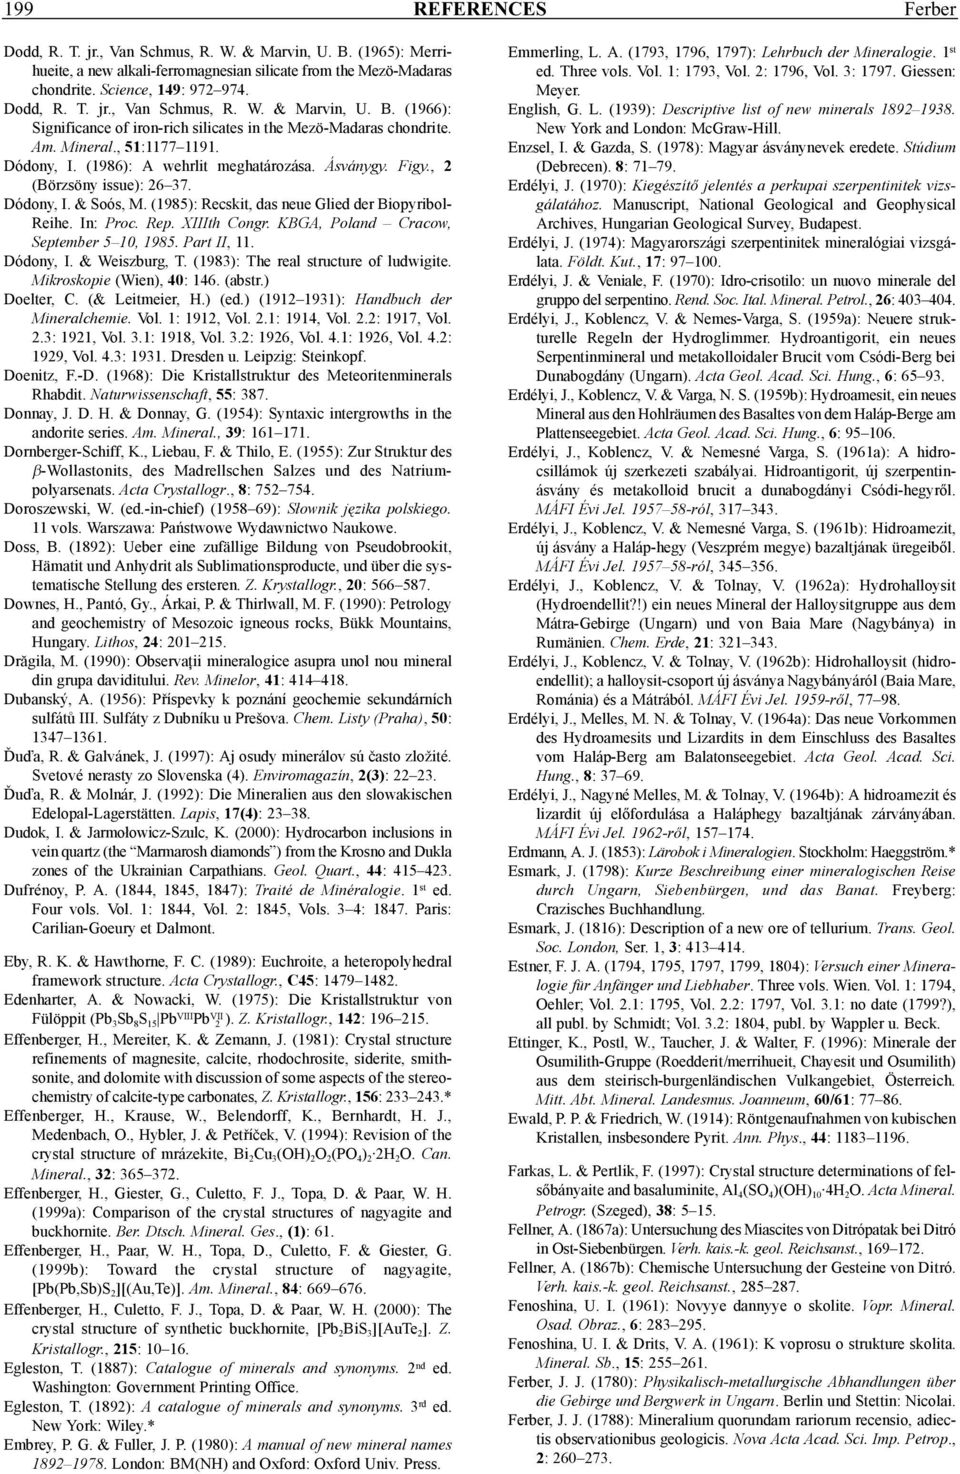 In: Proc. Rep. XIIIth Congr. KBGA, Poland Cracow, September 5 10, 1985. Part II, 11. Dódony, I. & Weiszburg, T. (1983): The real structure of ludwigite. Mikroskopie (Wien), 40: 146. (abstr.